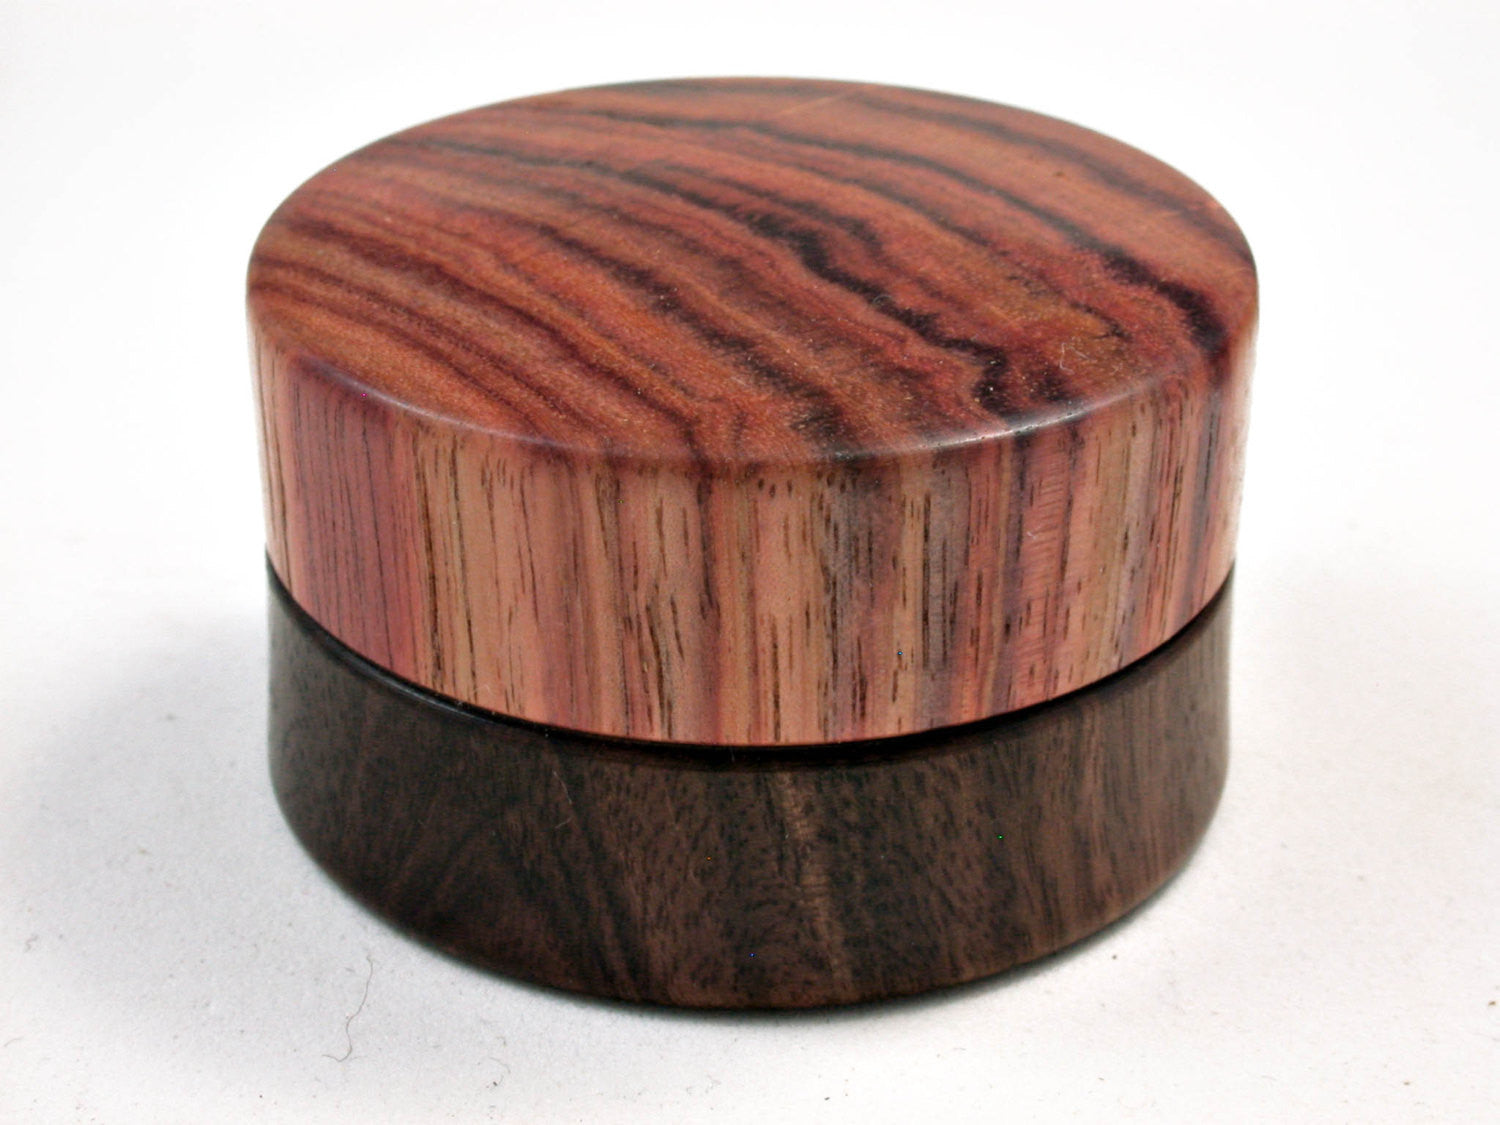 LV-2499 Mun Ebony & Tulipwood Flat Pill Box, Ring Holder, Jewelry Box-SCREW CAP